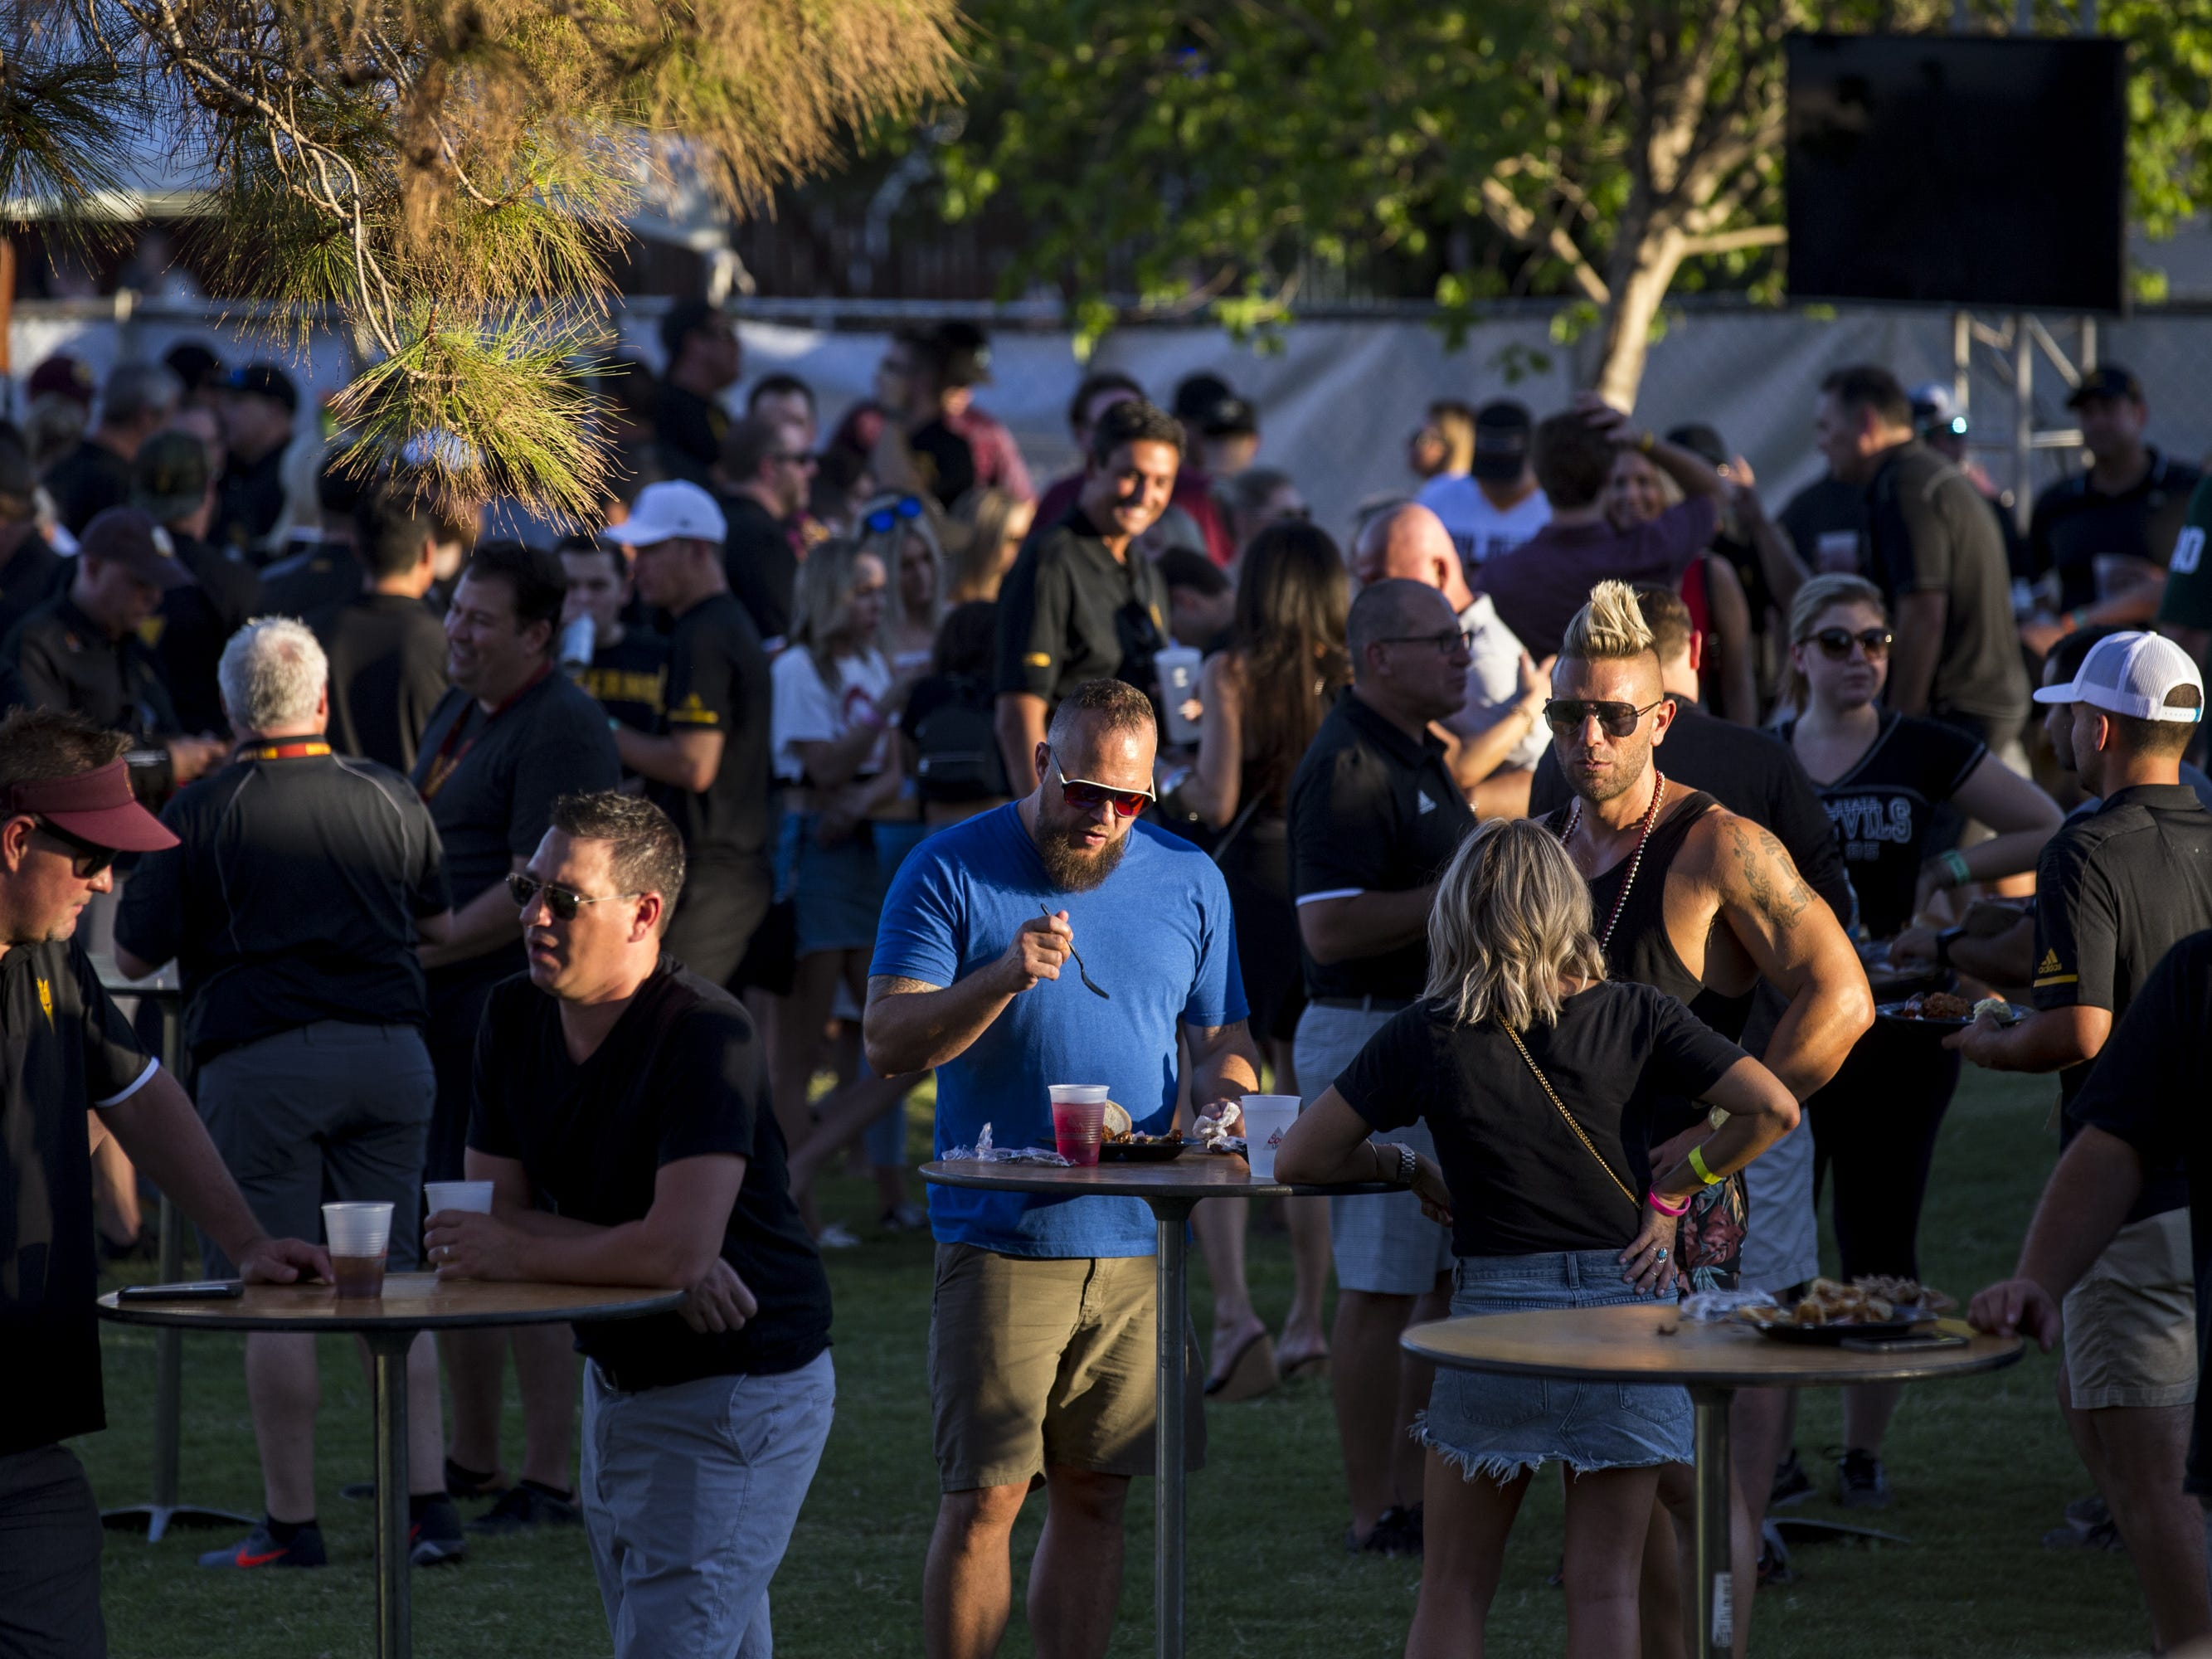 Fans tailgate before the game against Michigan State on Saturday, Sept. 8, 2018, at Sun Devil Stadium in Tempe, Ariz.